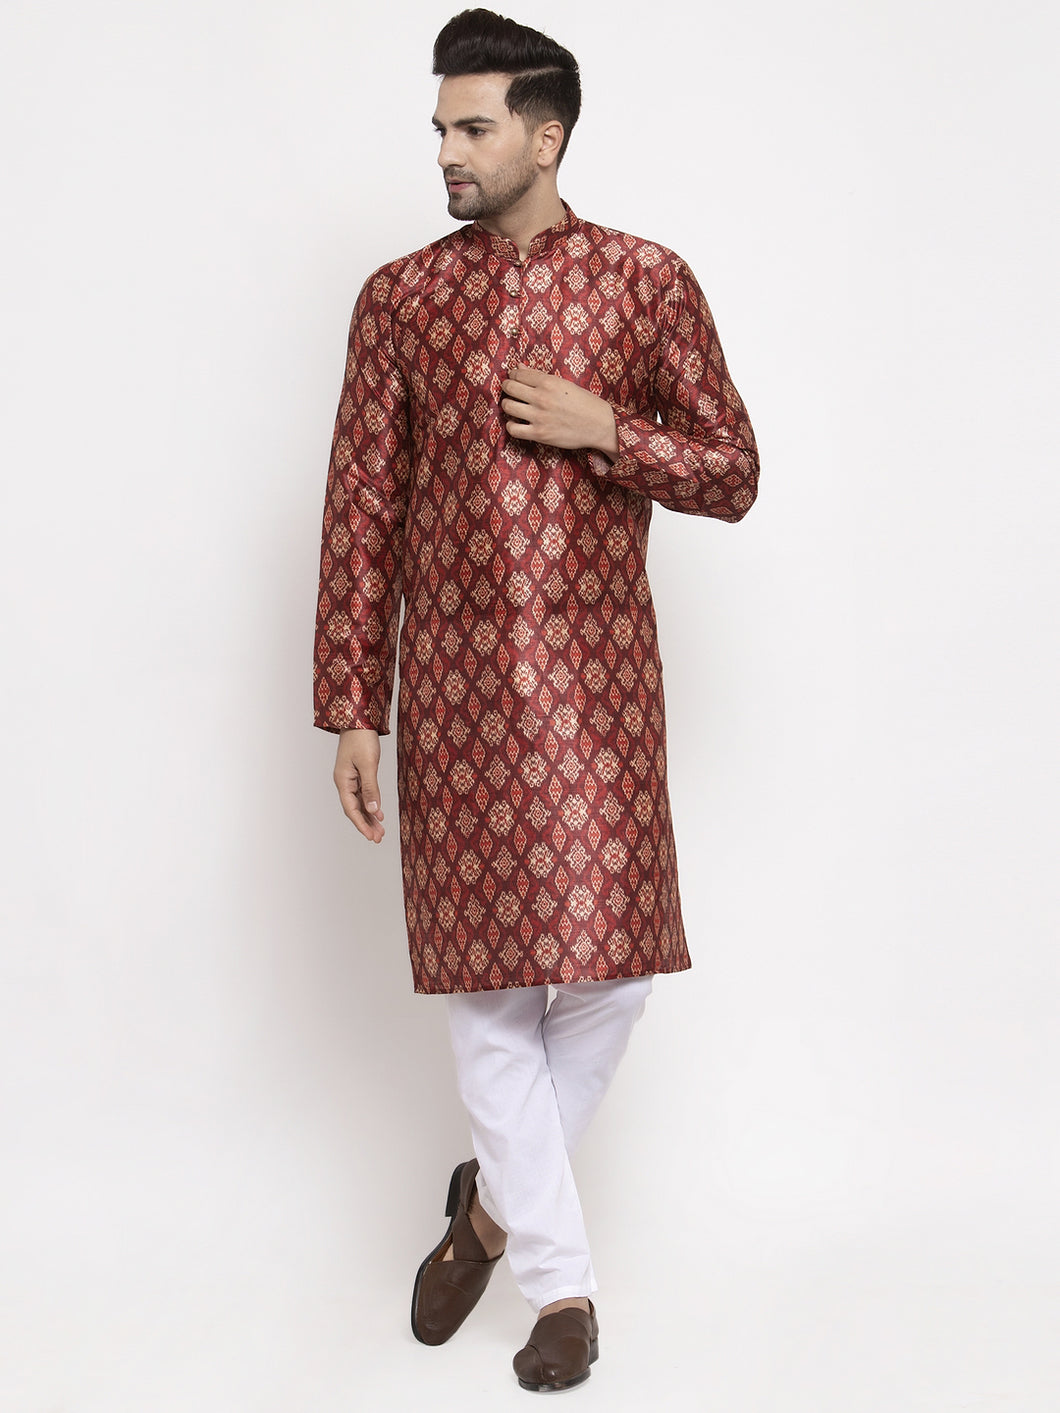 Jompers Men Maroon Printed Kurta with Pyjamas